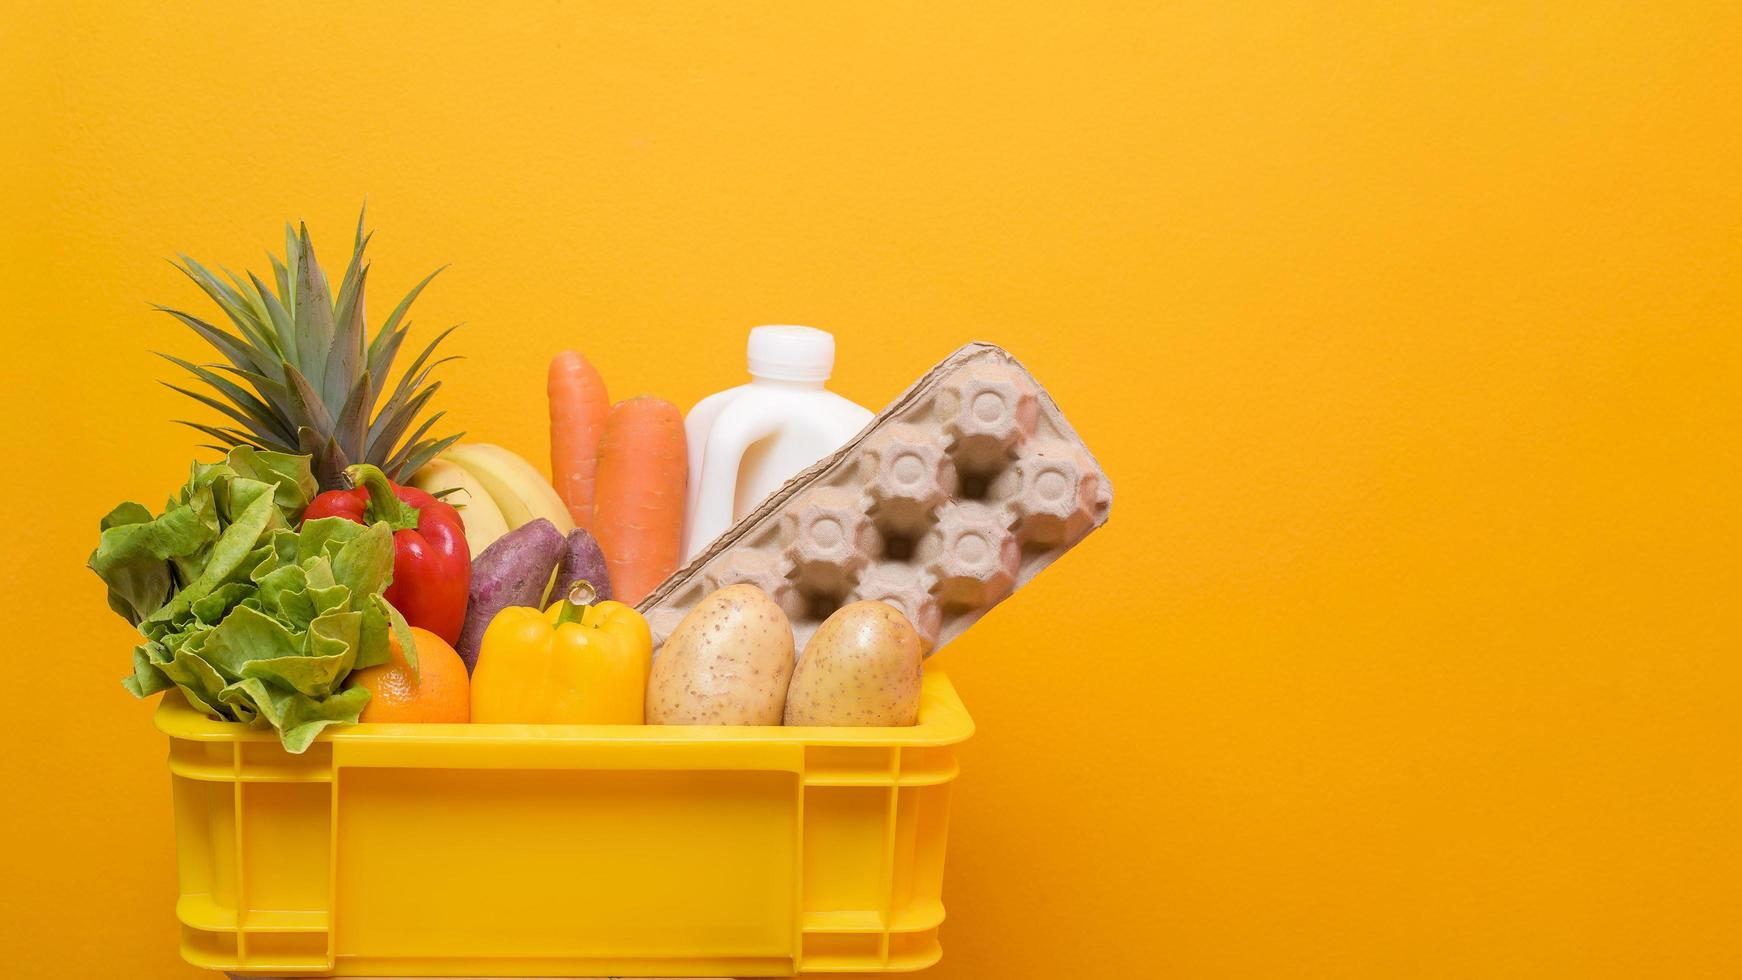 Box of groceries on yellow background photo